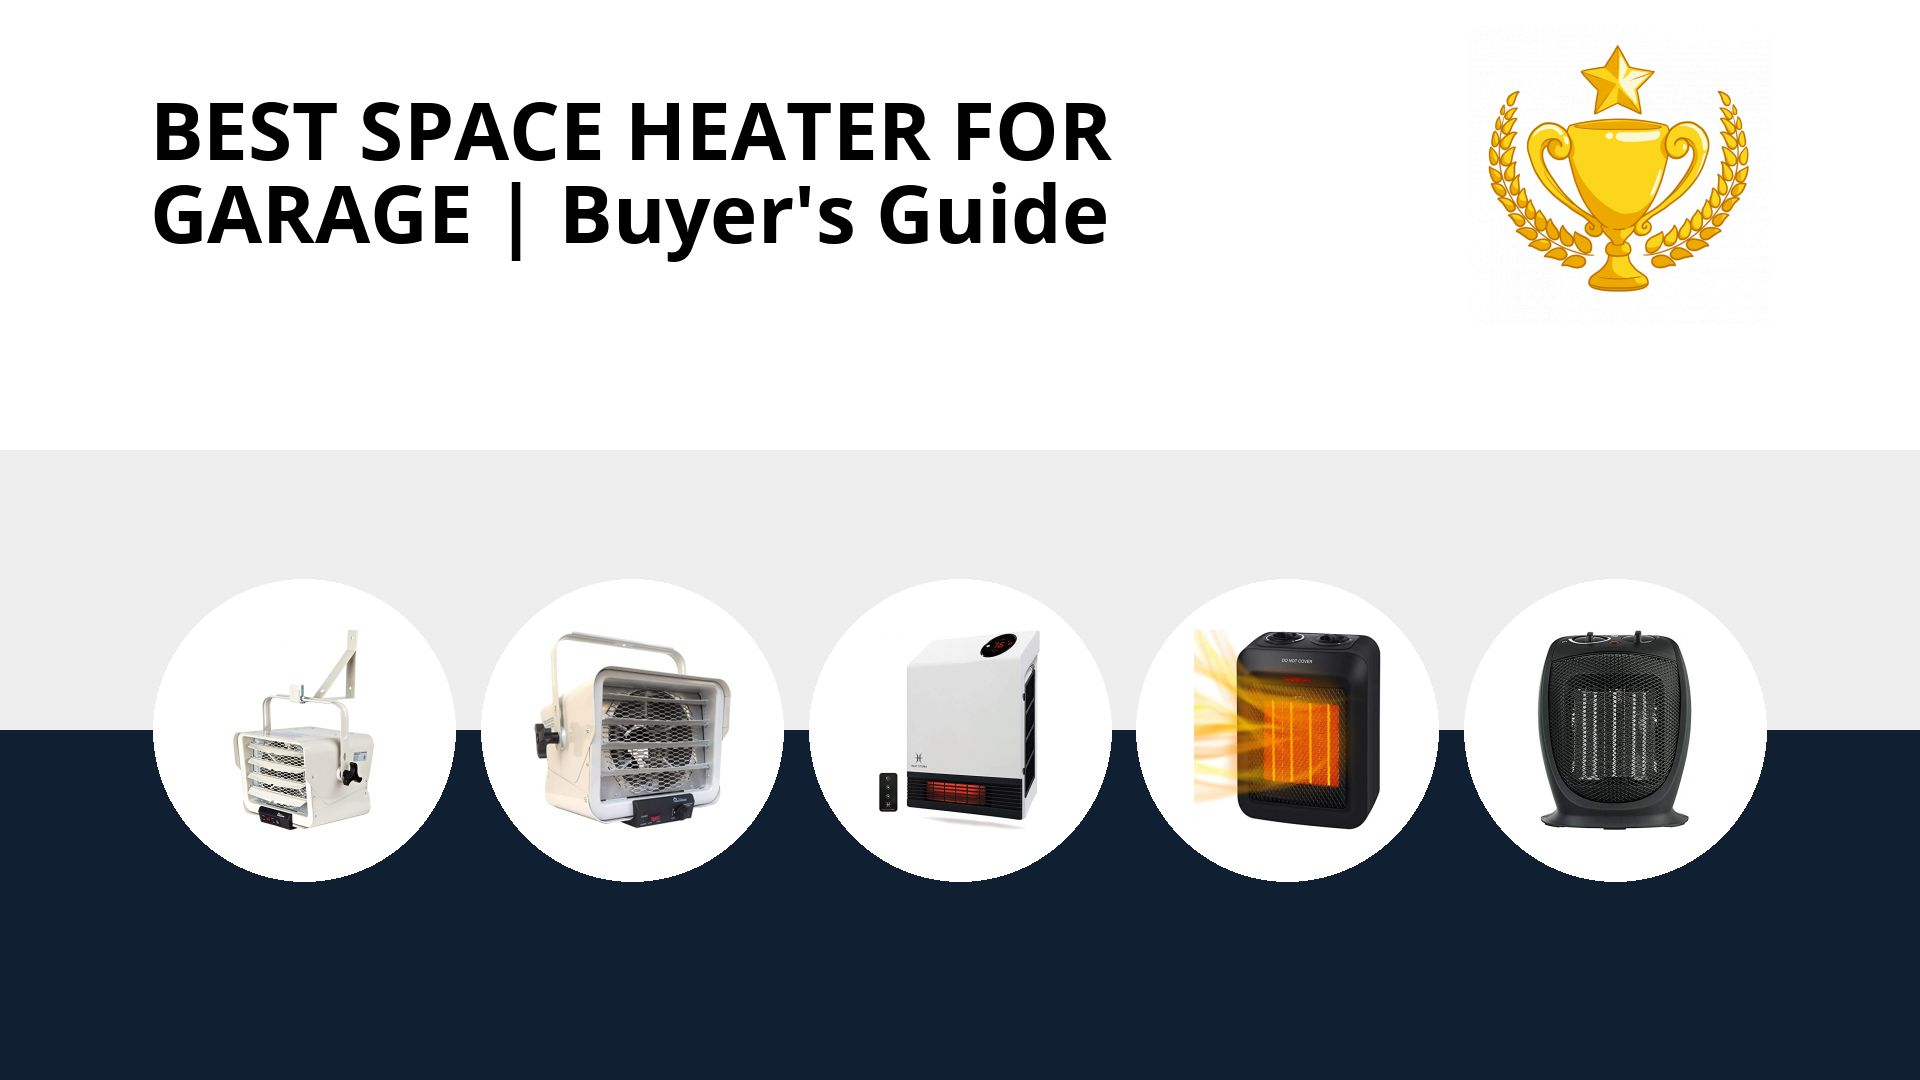 Best Space Heater For Garage: image